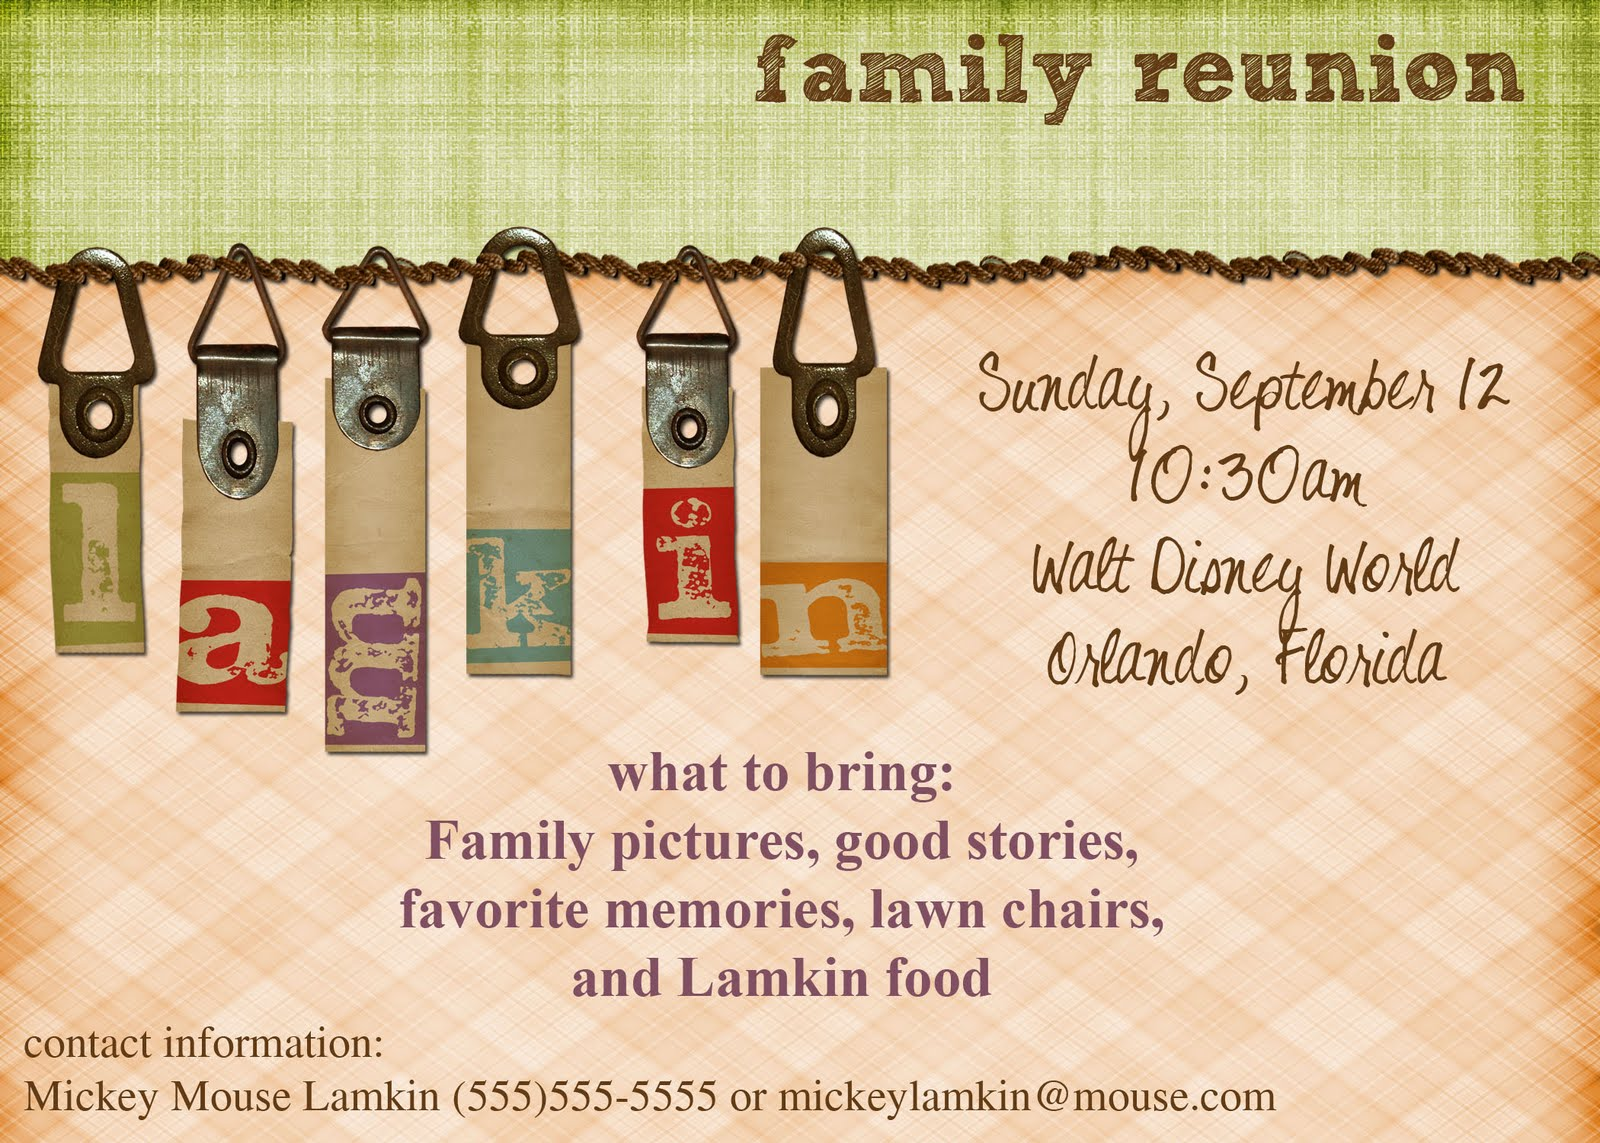 Printable Reunion Invitations – Free Printable Family Reunion Invitations